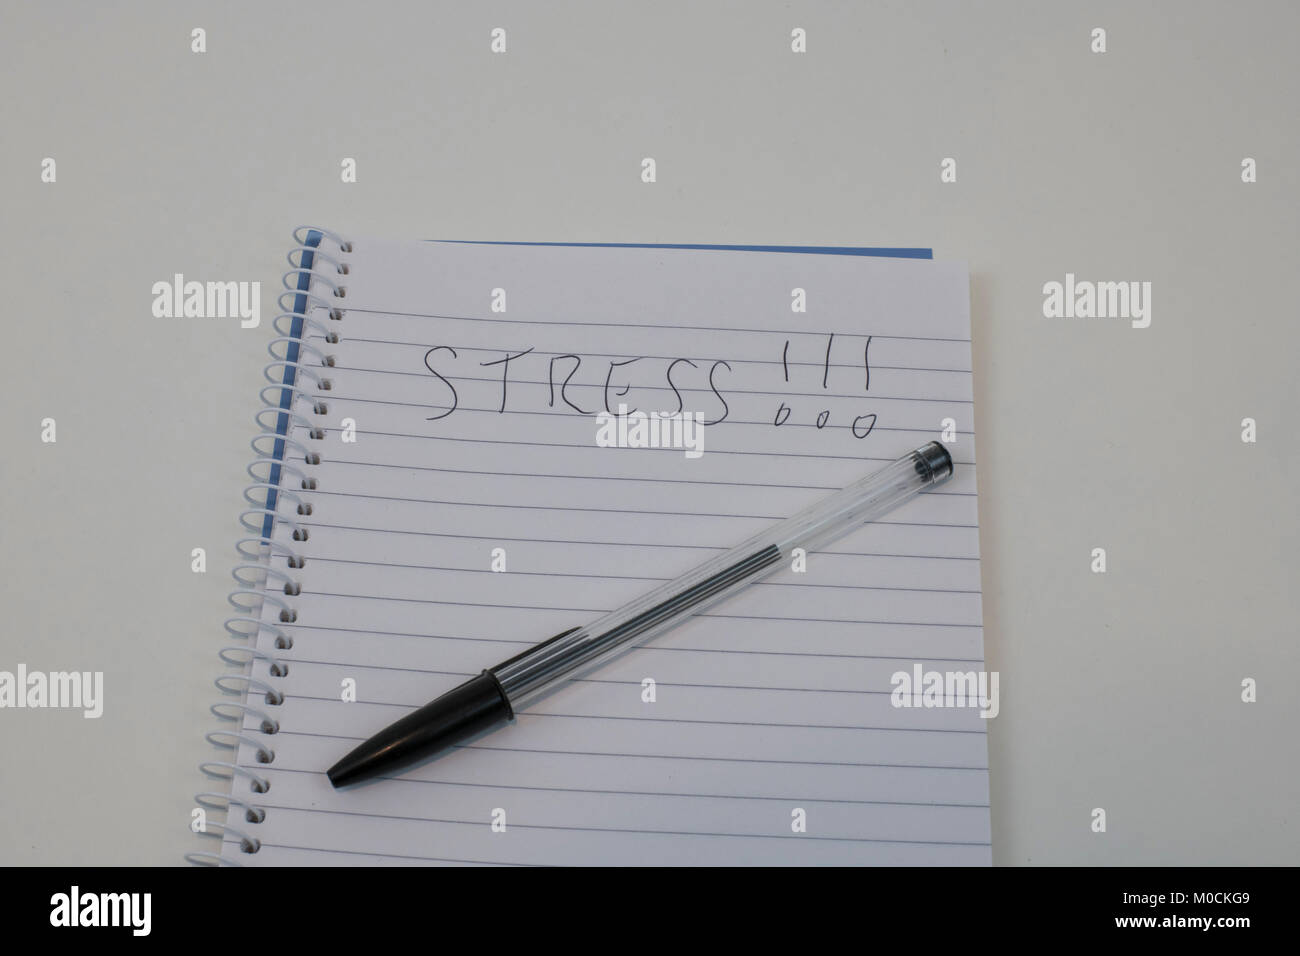 Handwriten Stress on notepad - Stock Image